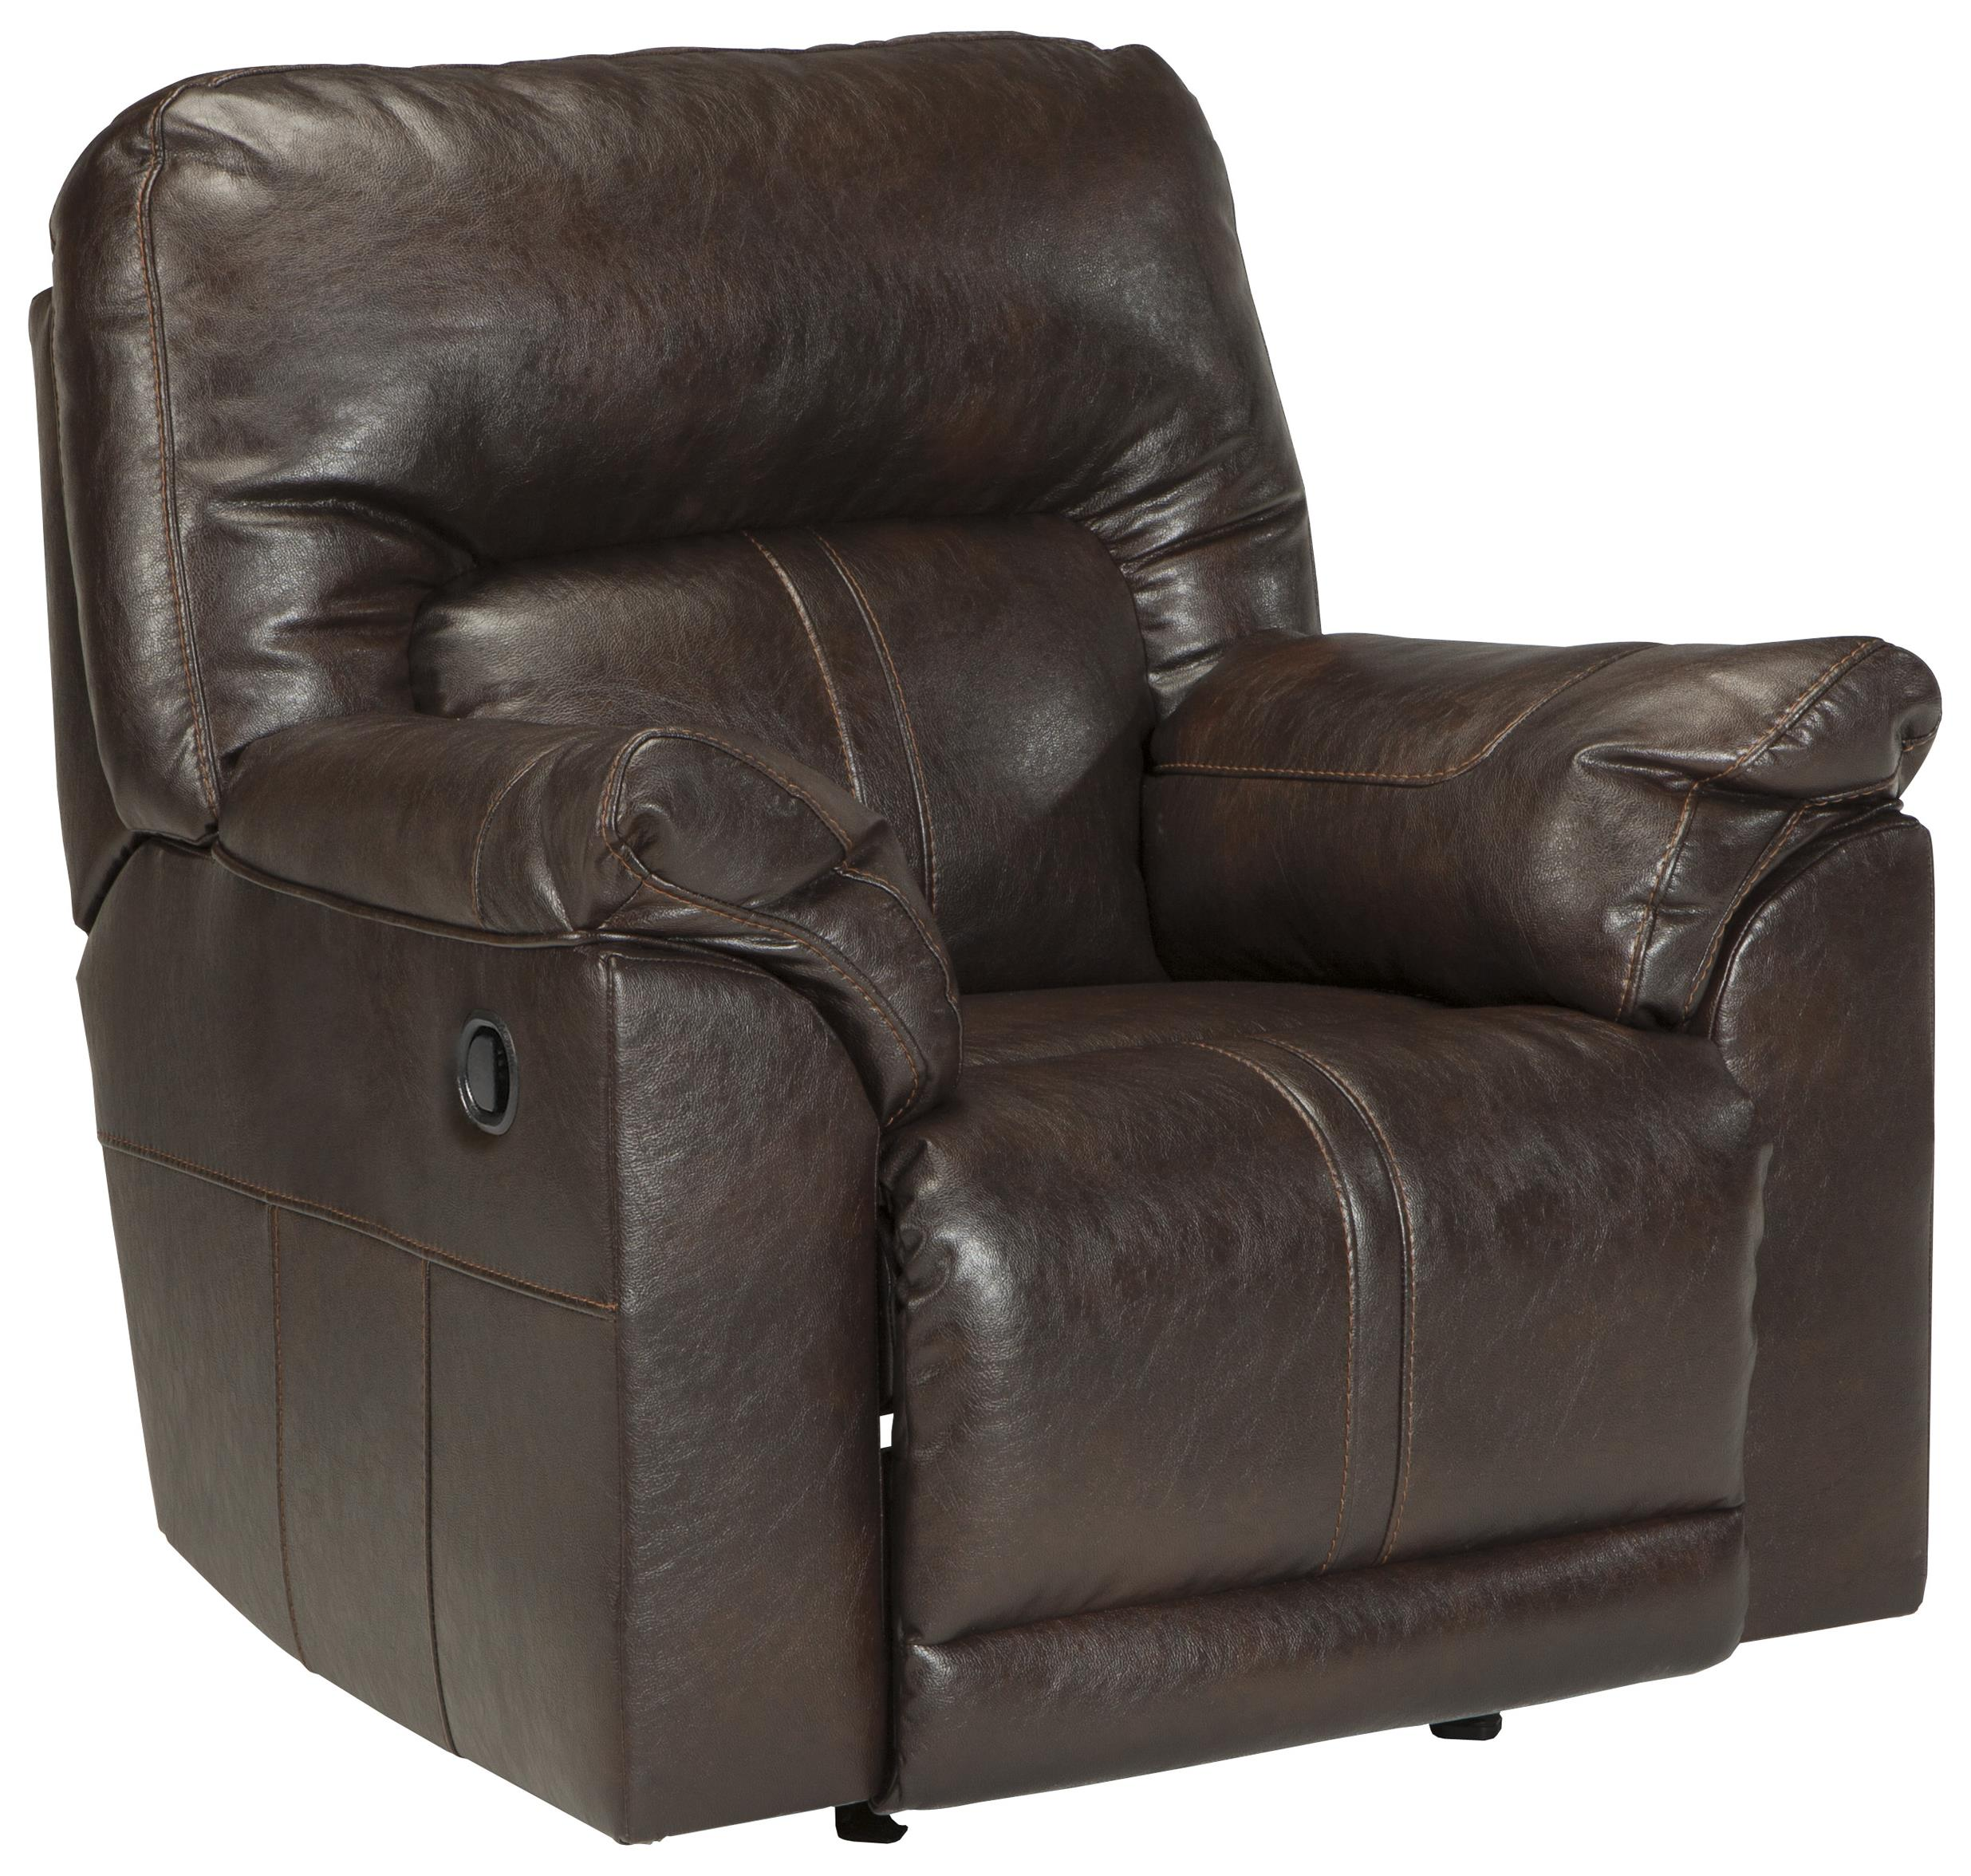 Benchcraft Barrettsville DuraBlend® Rocker Recliner - Item Number: 4730125